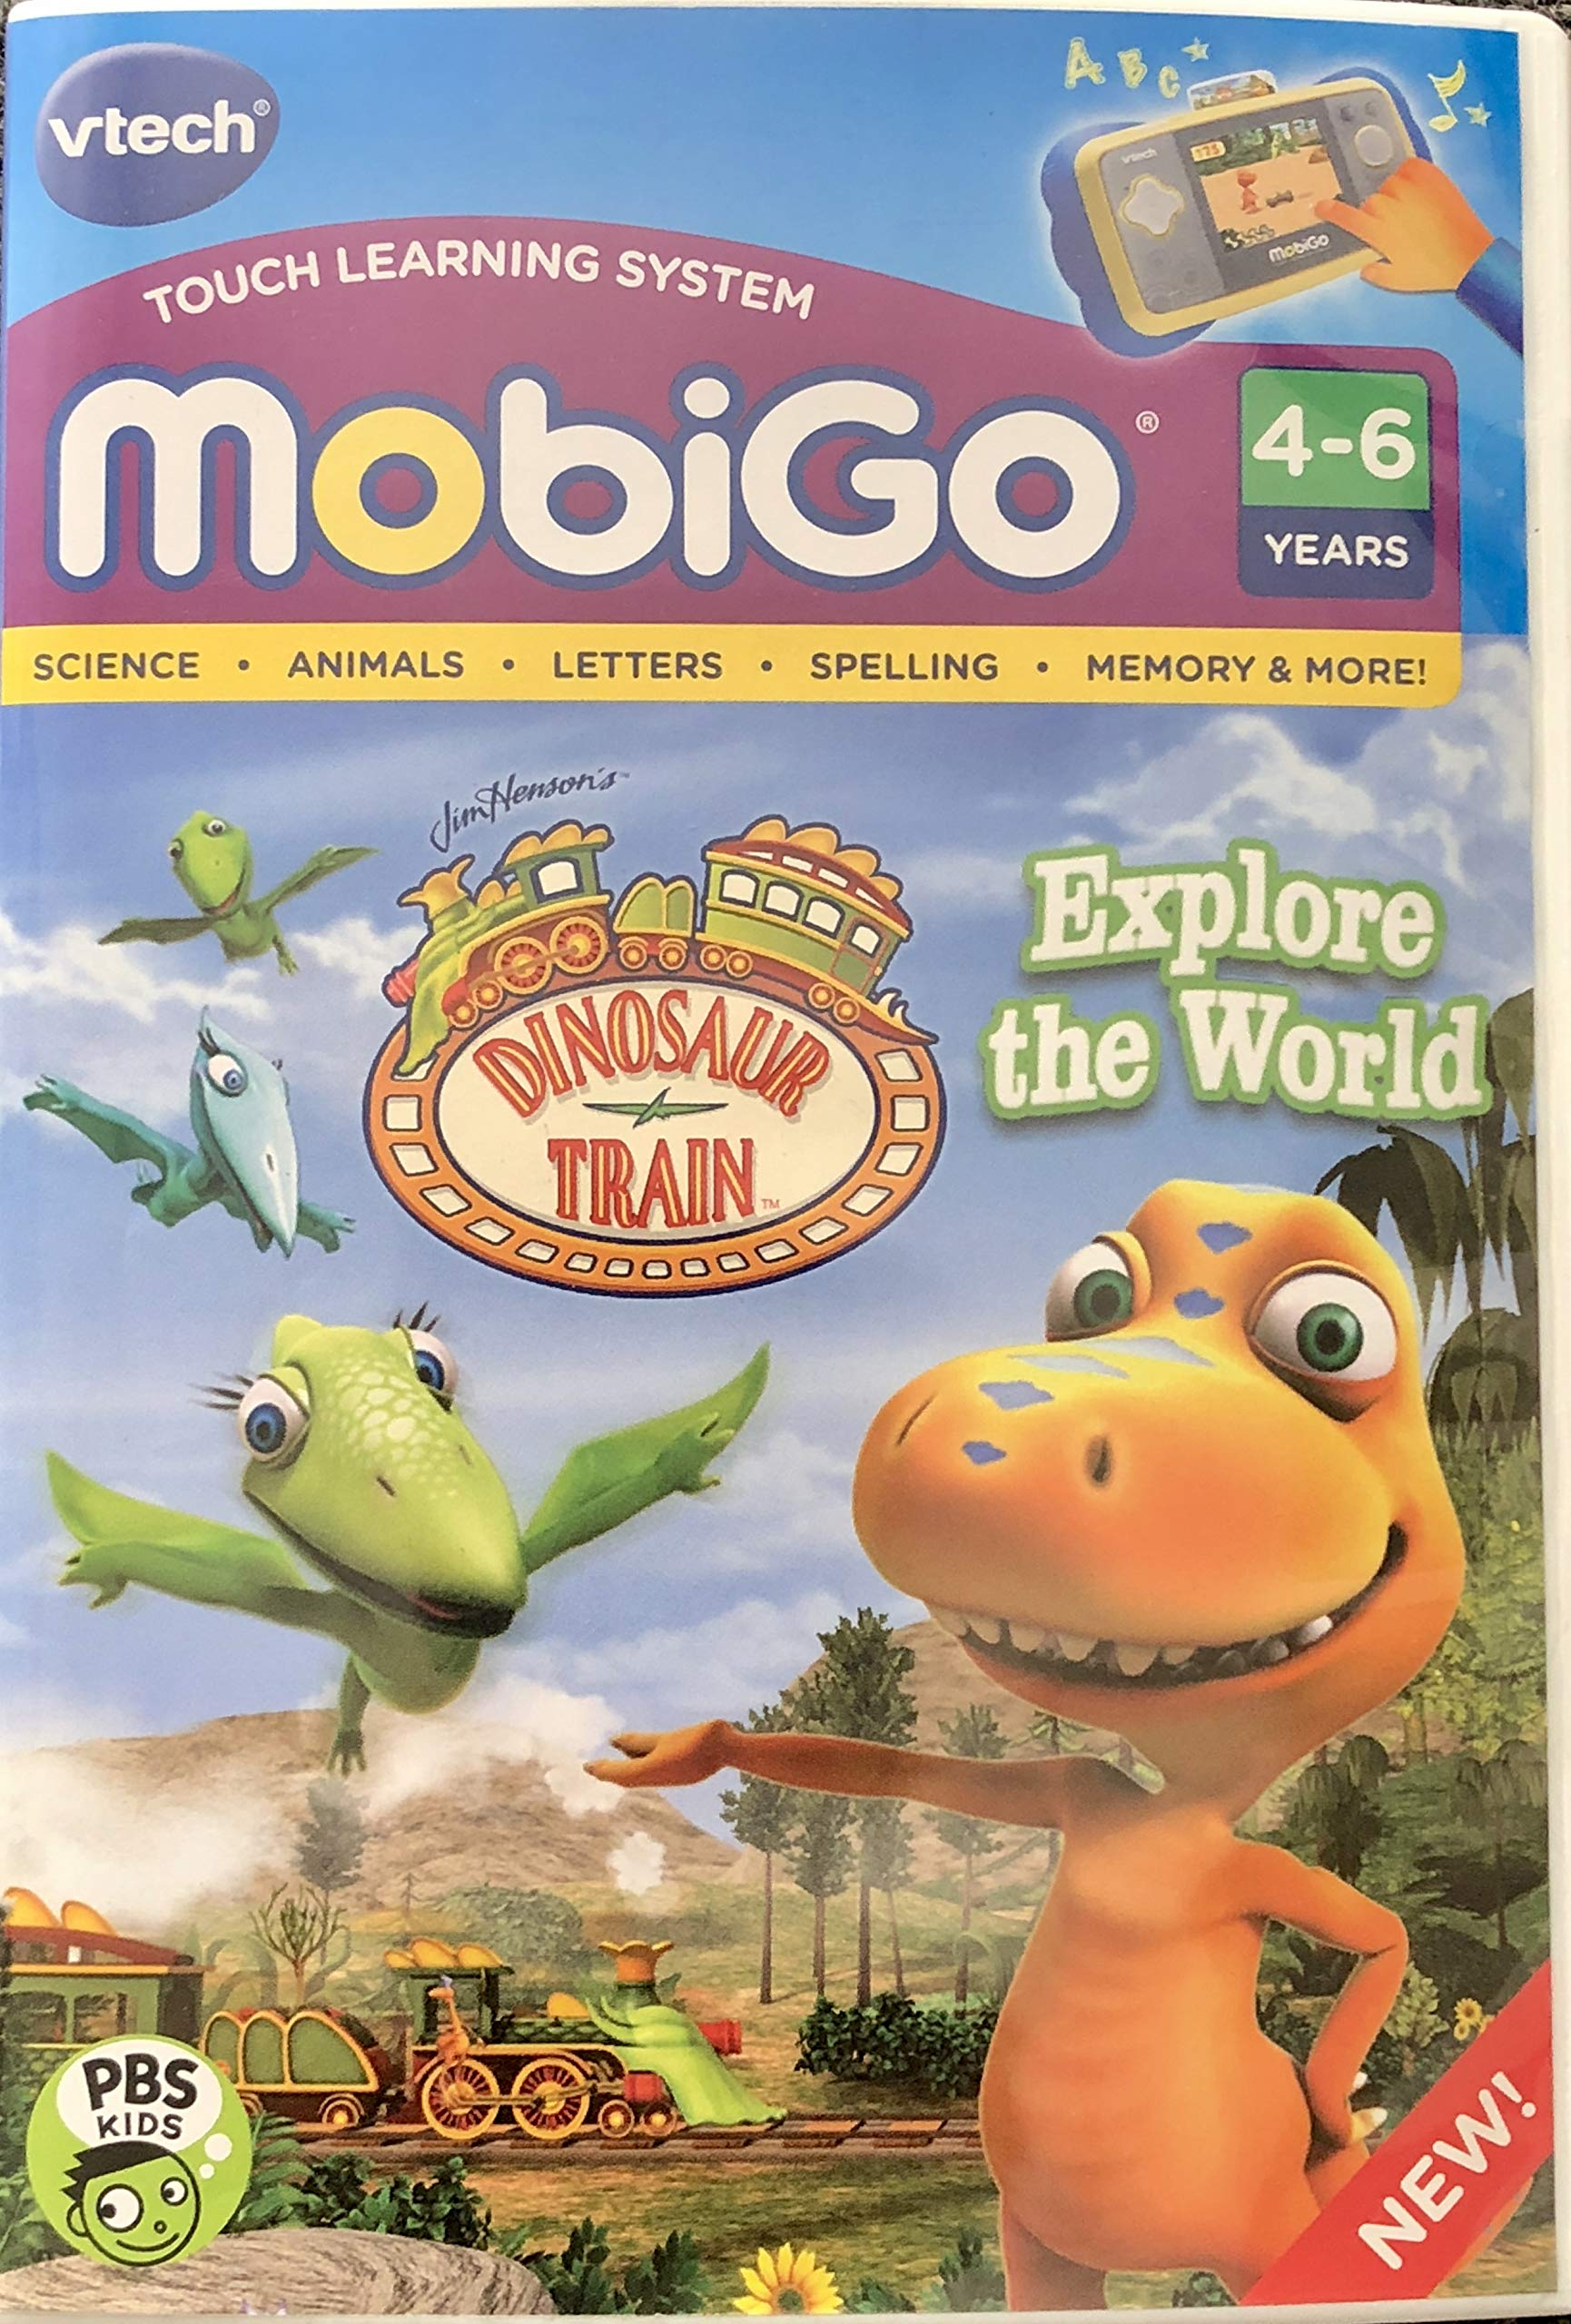 MobiGo Vtech Touch Learning System Bundle Includes: 4X Games - Disney Fairies, Disney Princess, Dinosaur Train, Monsters University & $20 Download Card (Bundle One) by MobiGo (Image #2)